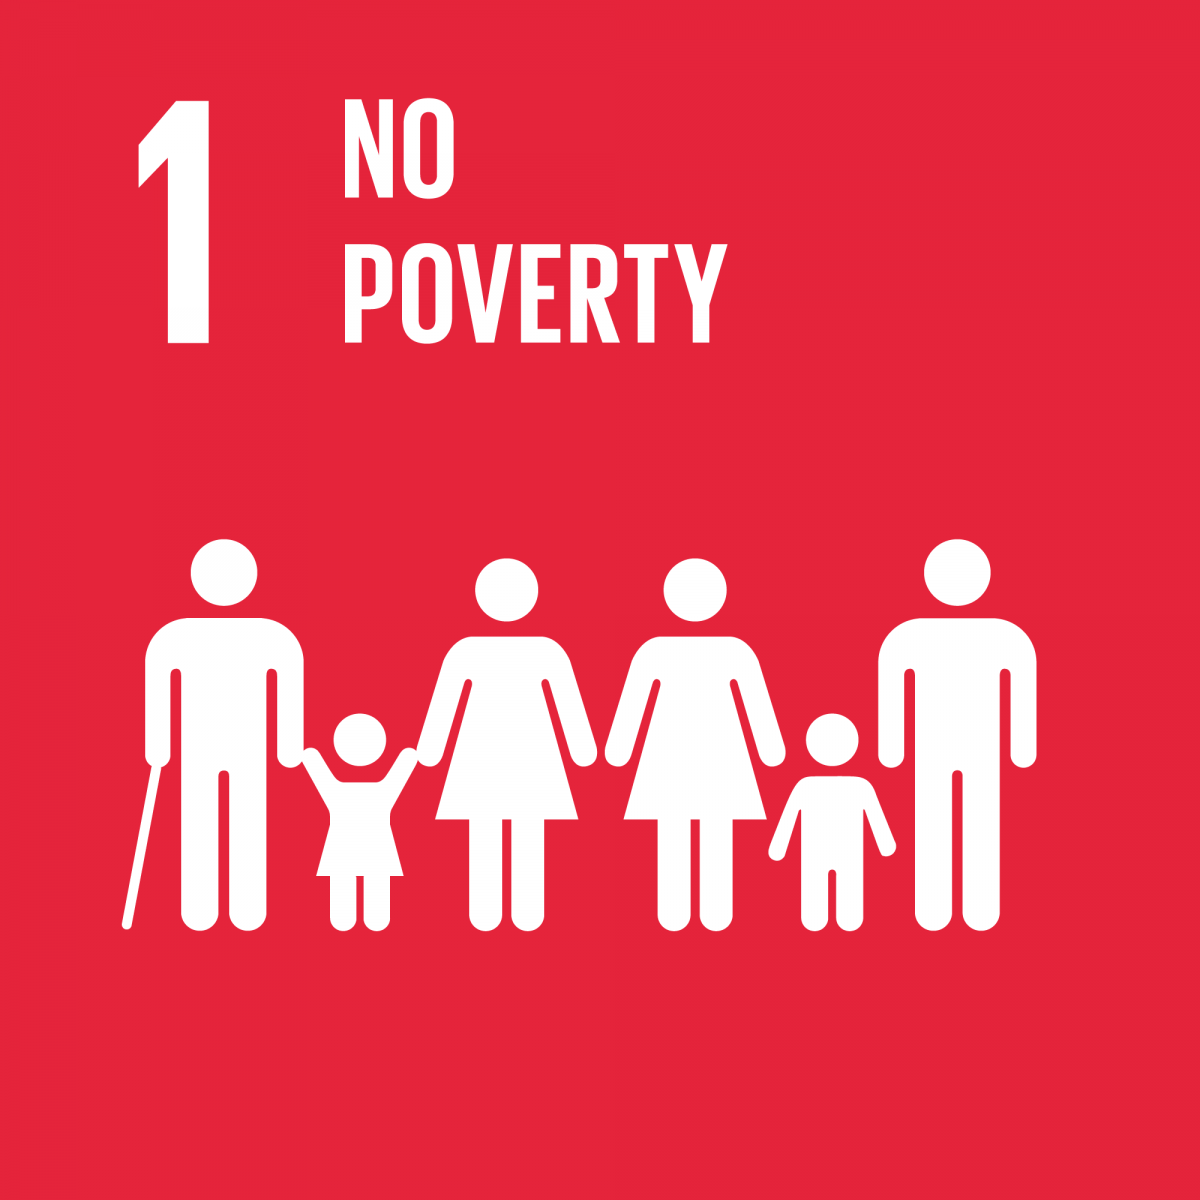 End poverty icon